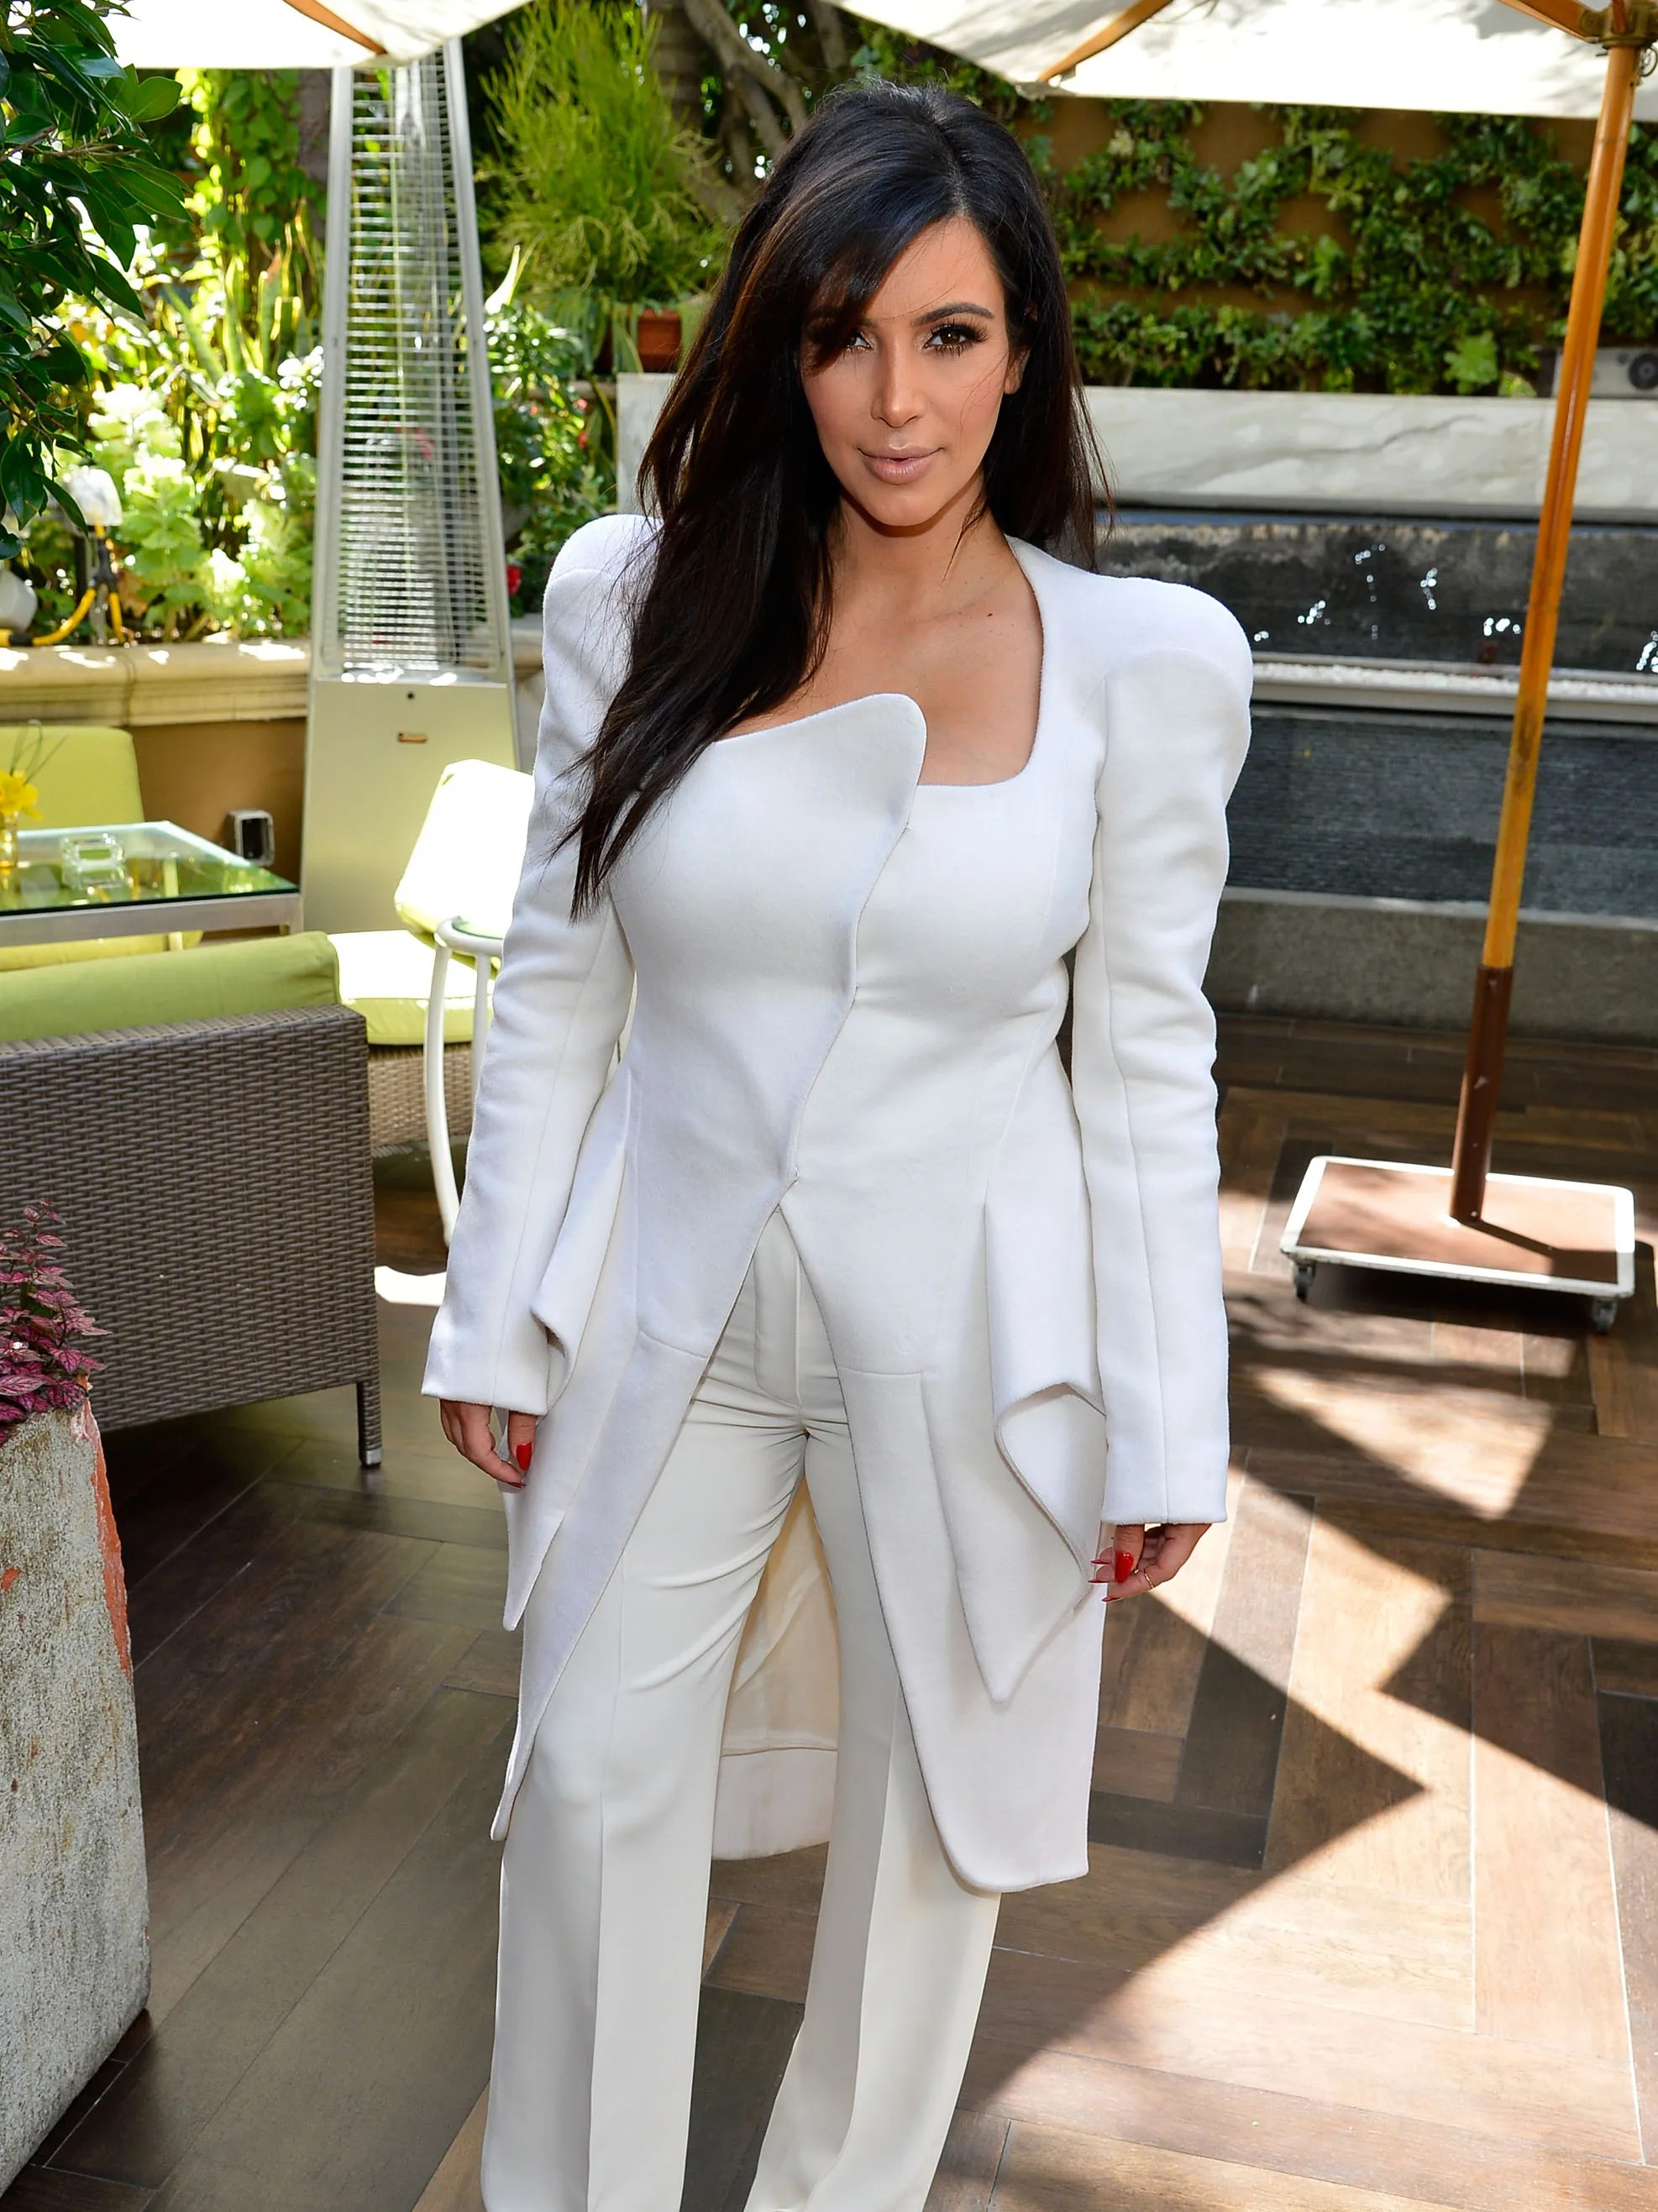 Since hooking up with West, Kardashian has favored stark, fitted white and black ensembles. Here she is at 'DuJour' magazine's bash in Los Angeles on March 2, 2013.